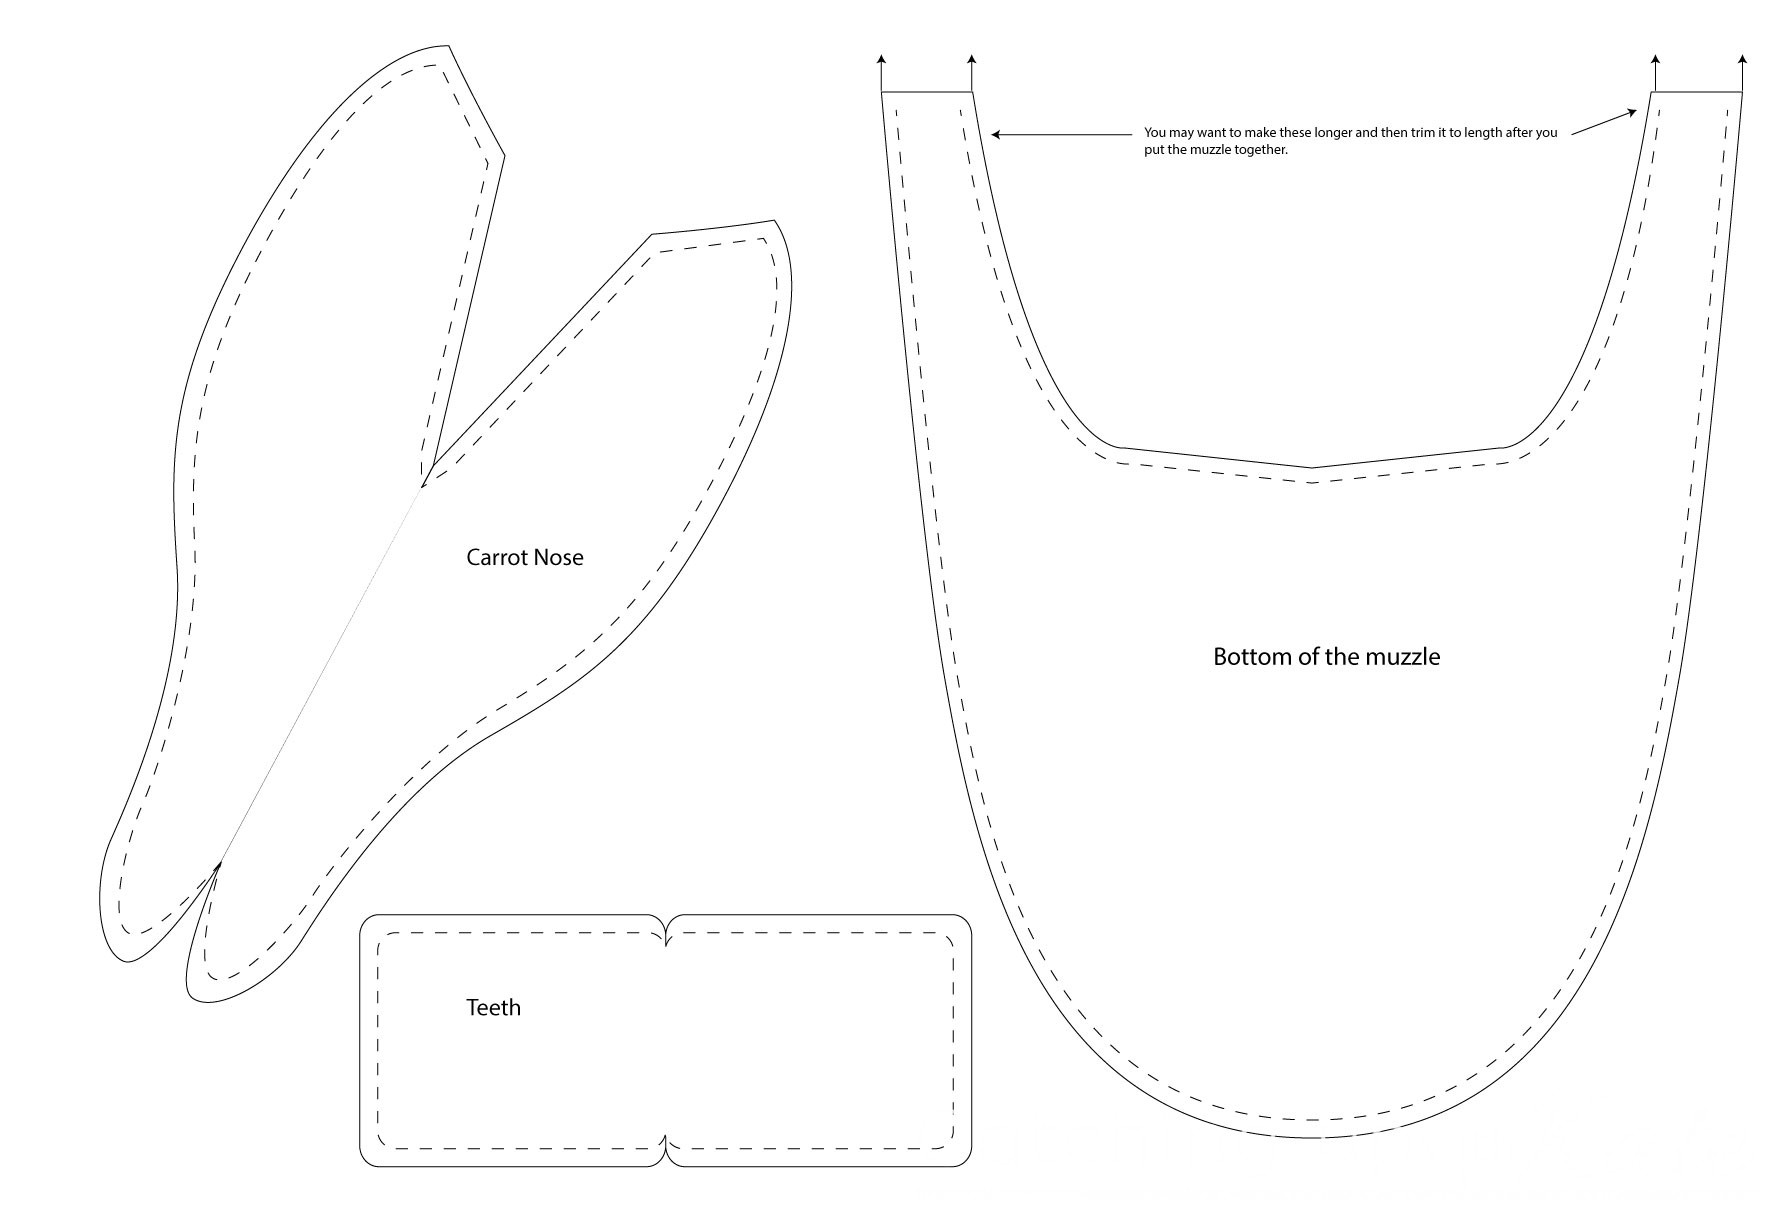 Diy olaf costume instructions highlights along the way olaf costume nose teeth muzzle bottom template pronofoot35fo Gallery